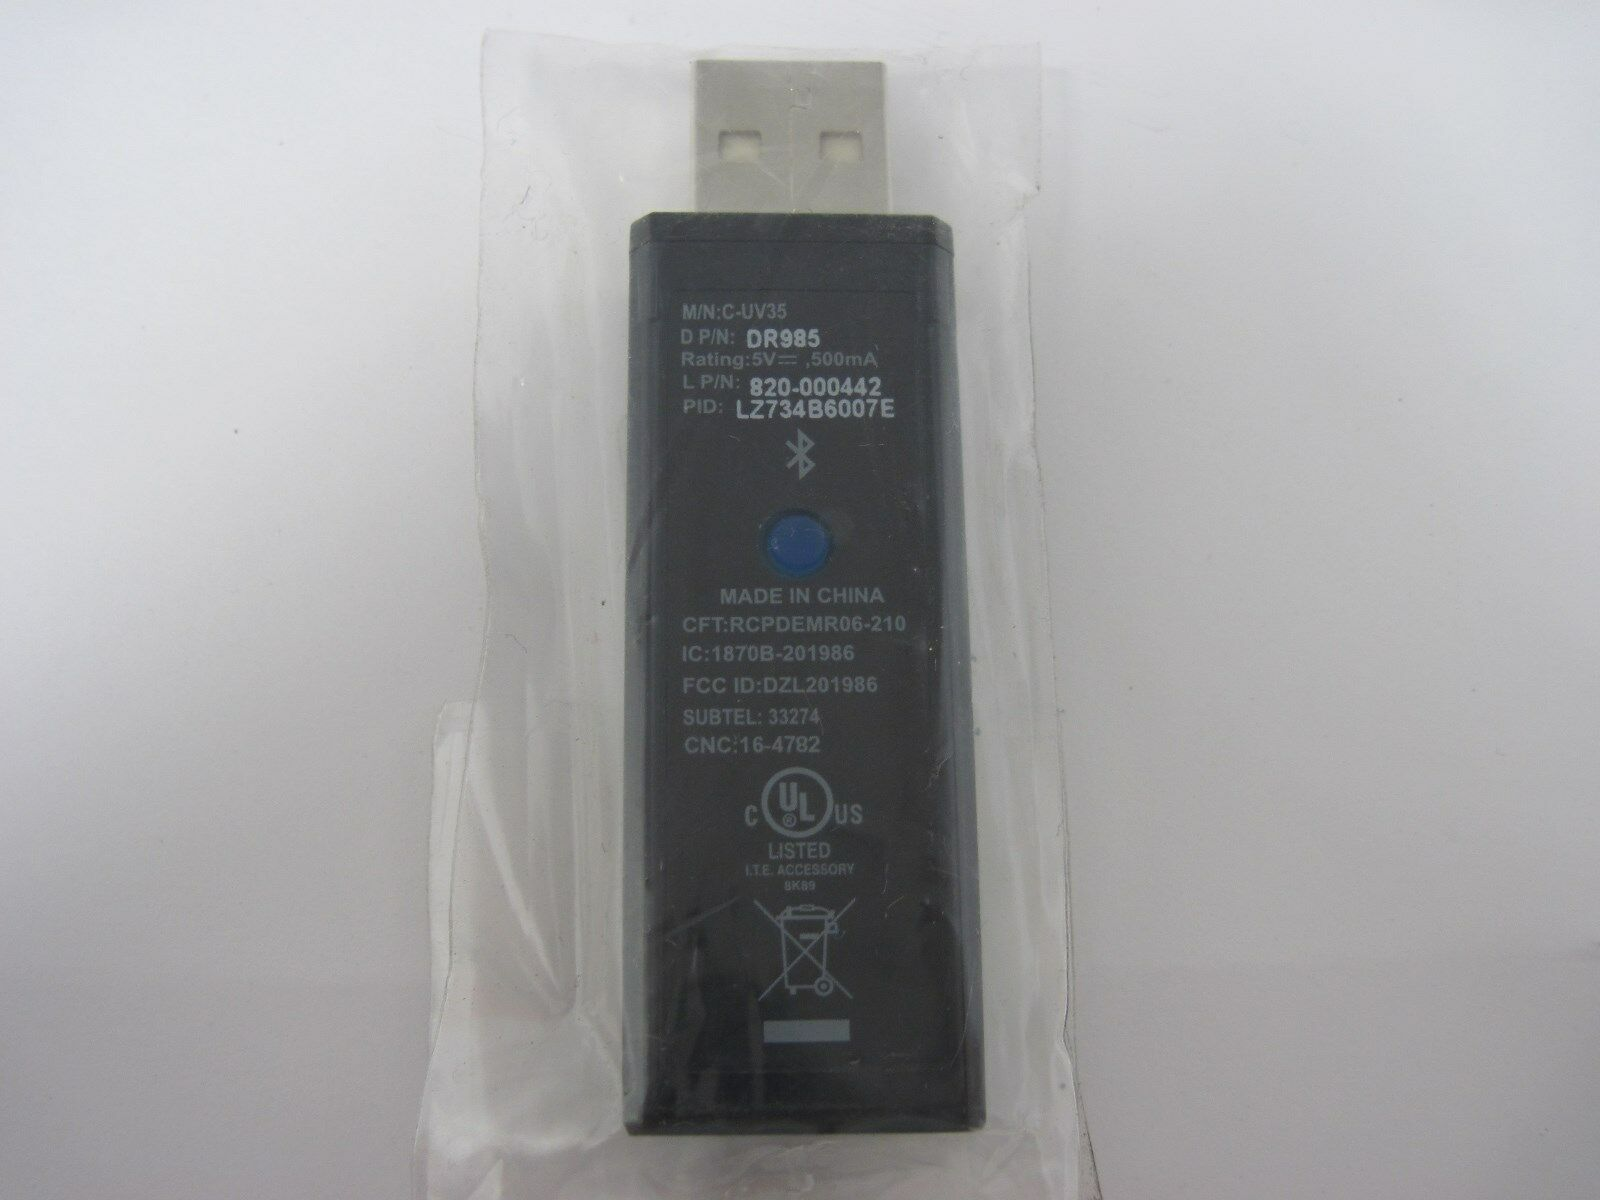 Lot of 5 NEW Dell C-UV35 USB Wireless Bluetooth Receiver Dongle DR985 820-000442